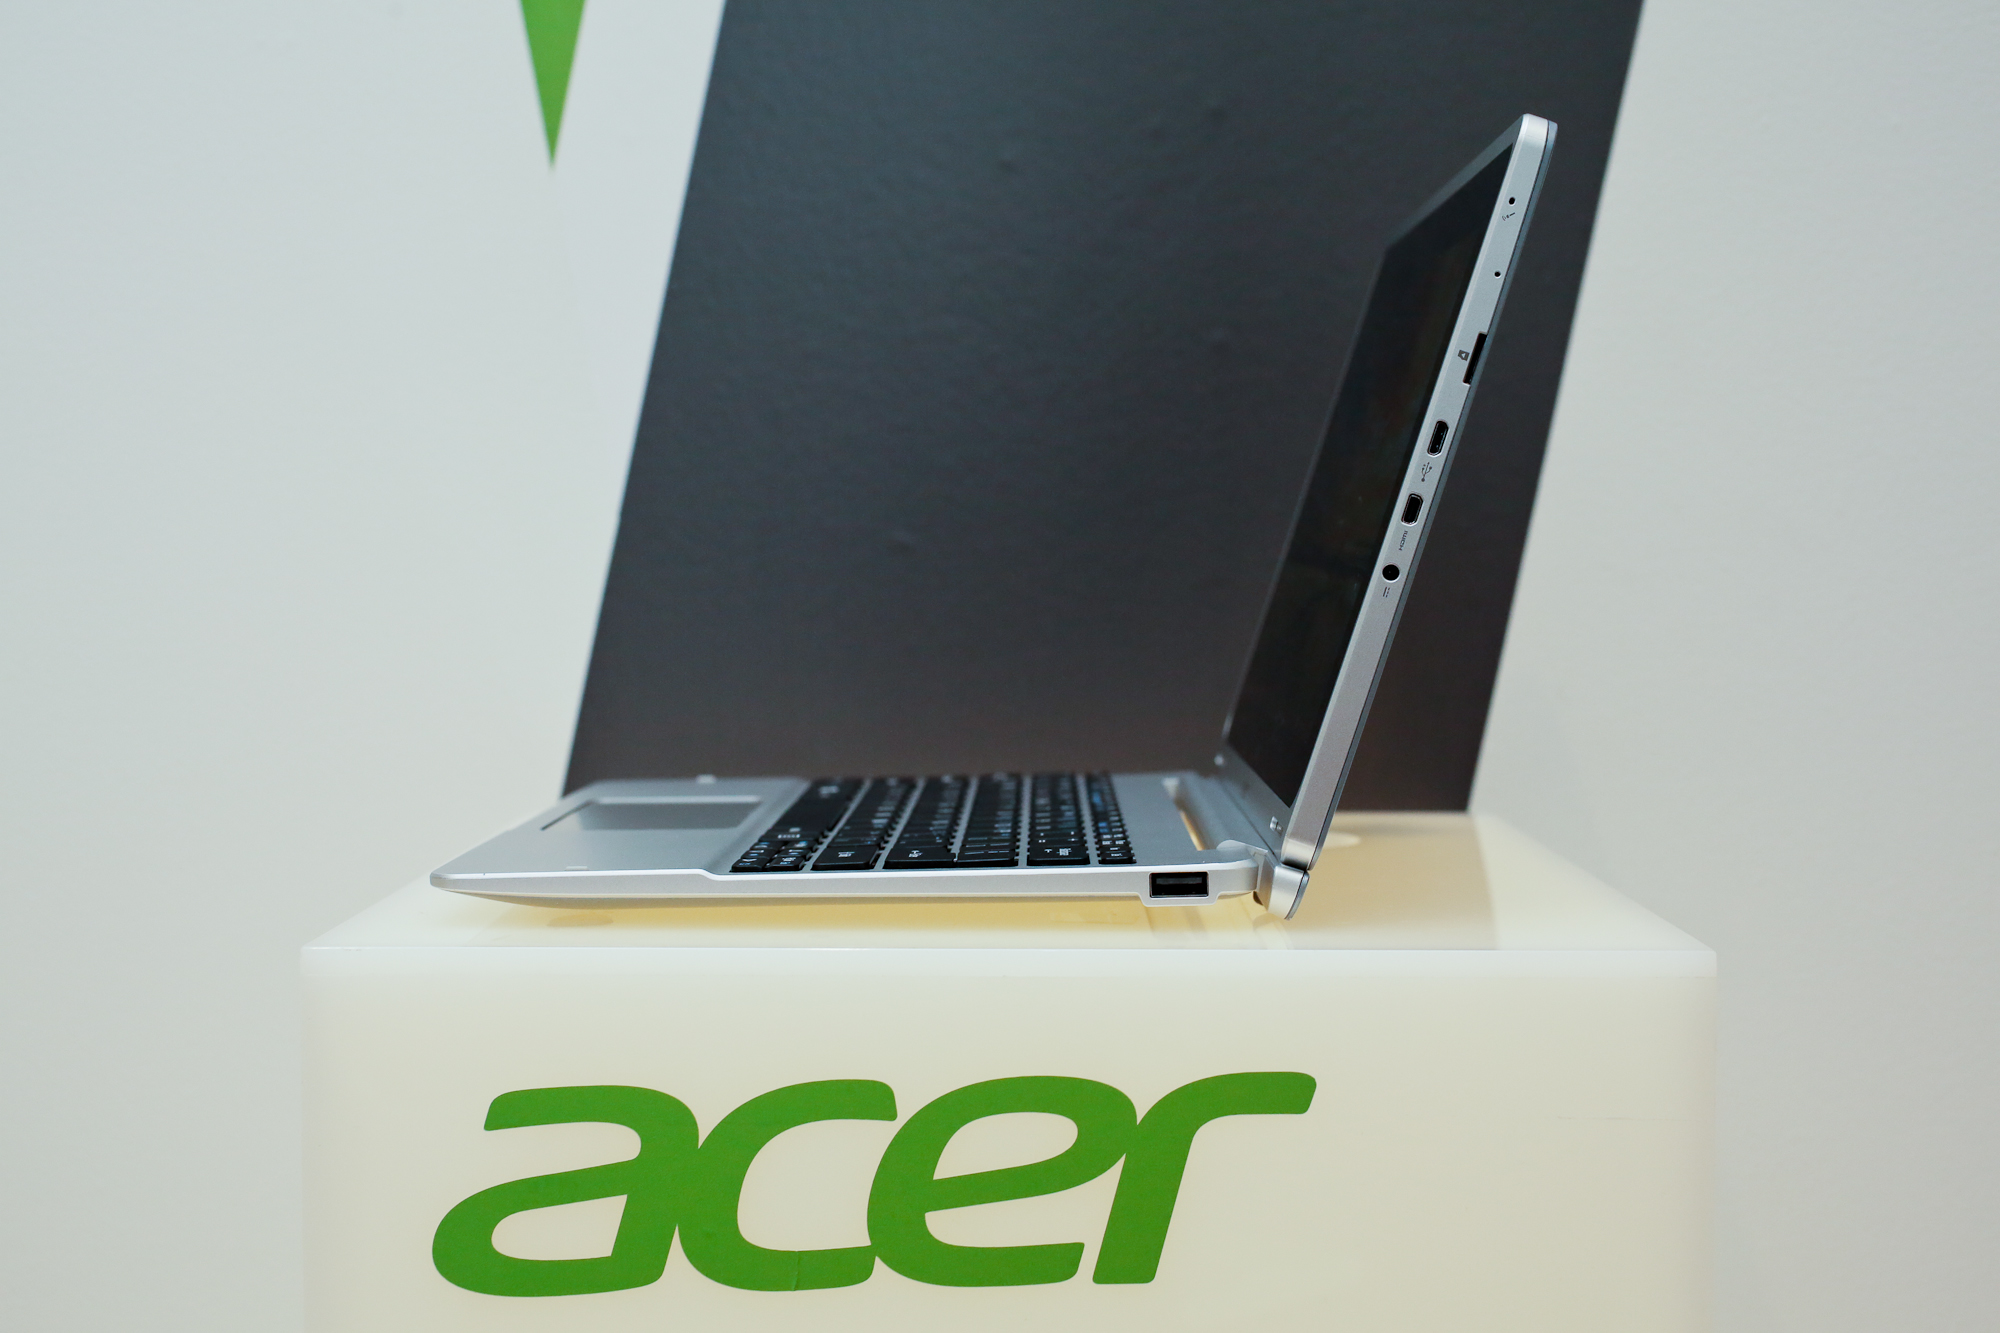 009acer-aspire-switch-10-product-photos.jpg